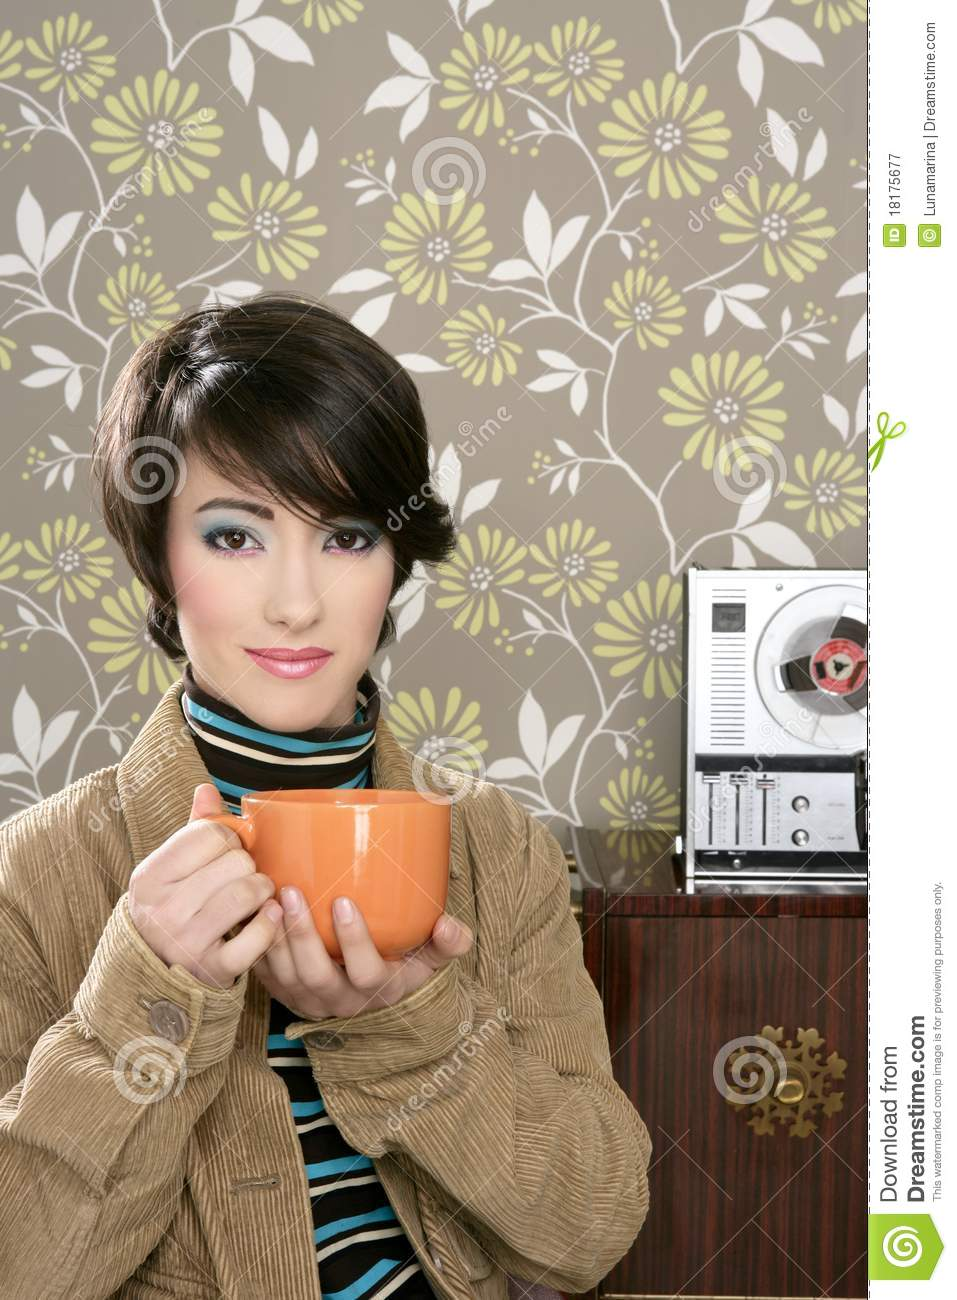 Coffee Cup Drinking Retro Fashion 60s Woman Stock Image